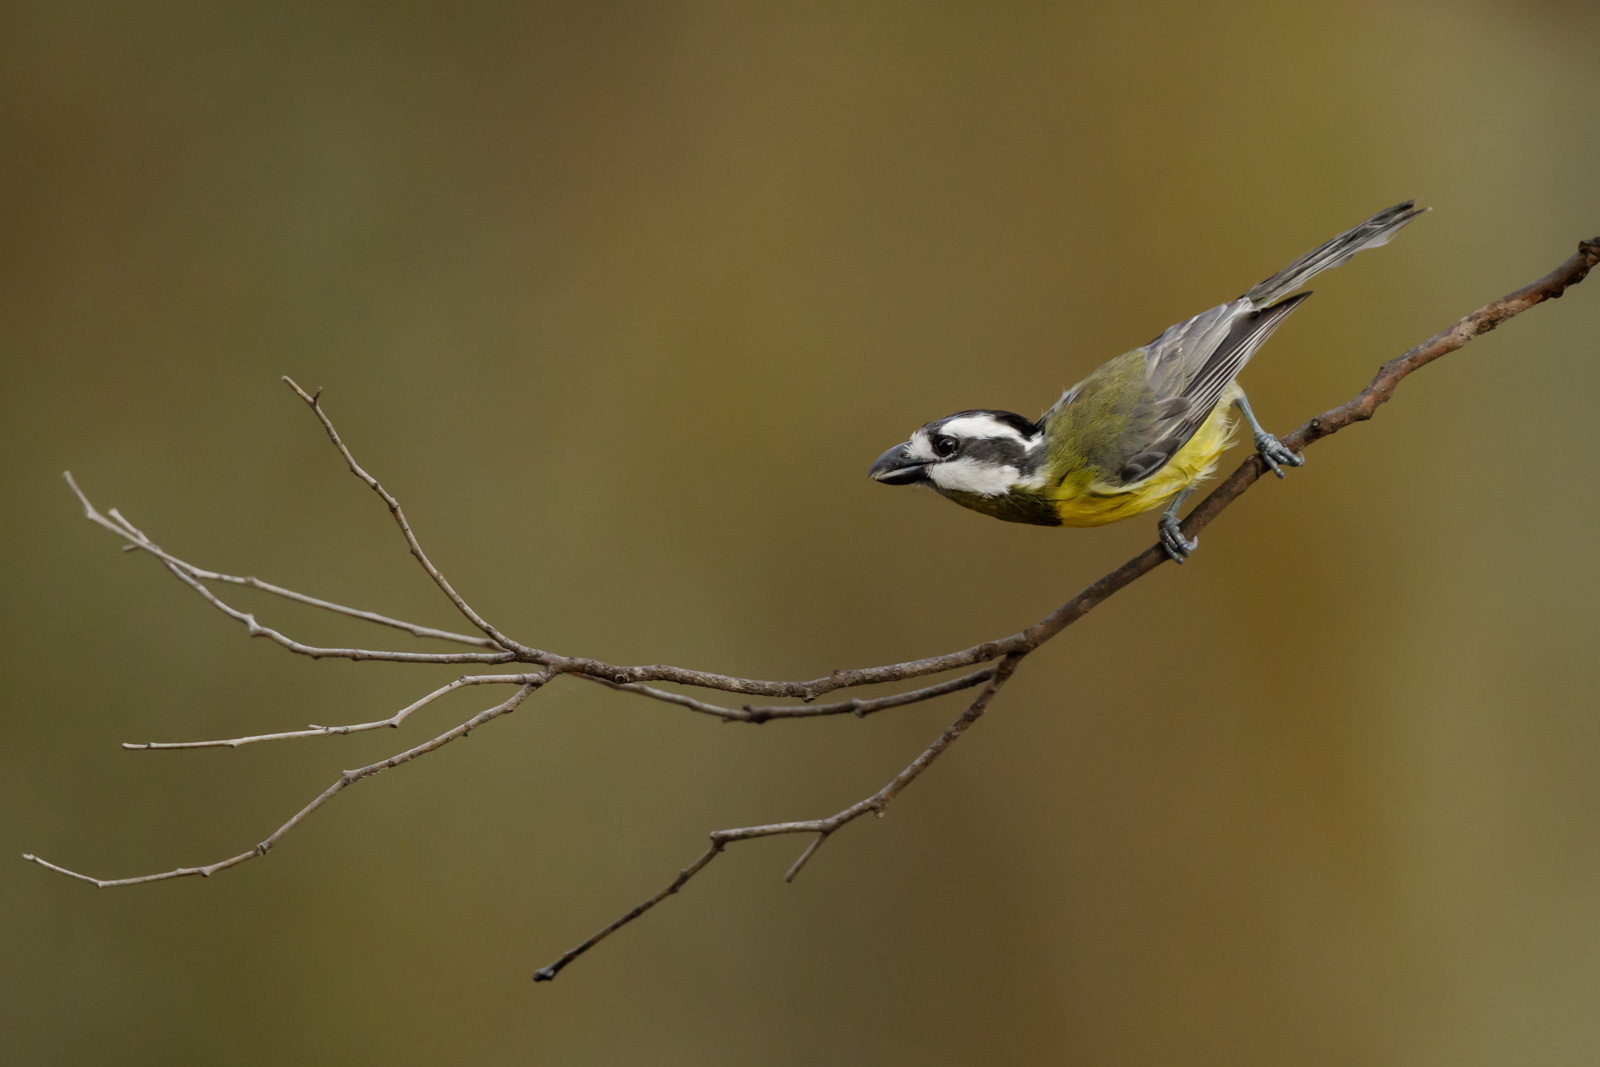 Crested Shrike-Tit_David Stowe-2284.jpg